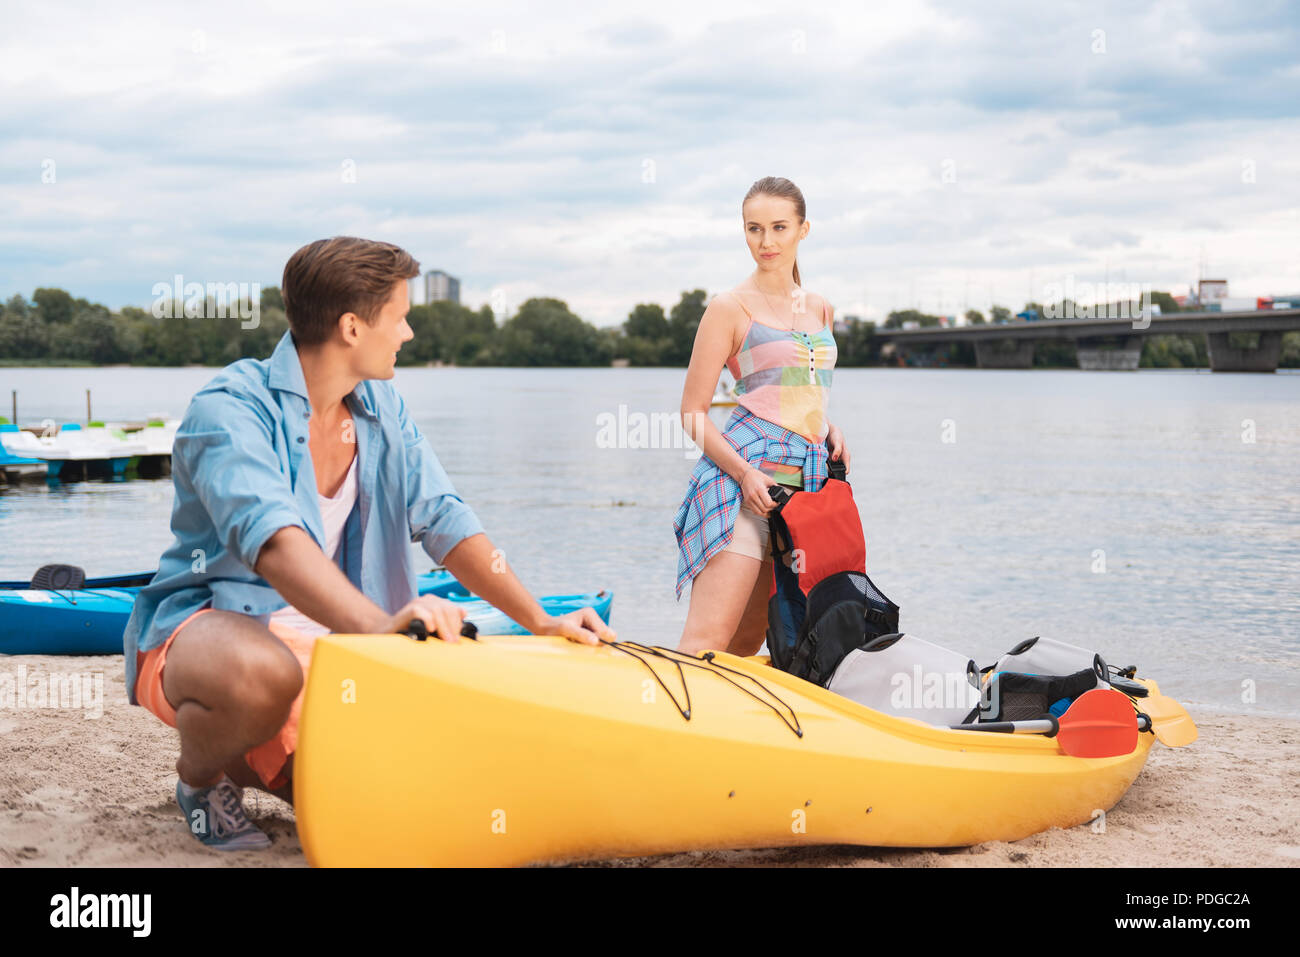 Cute coupe enjoying active tourism together Blonde-haired - Stock Image